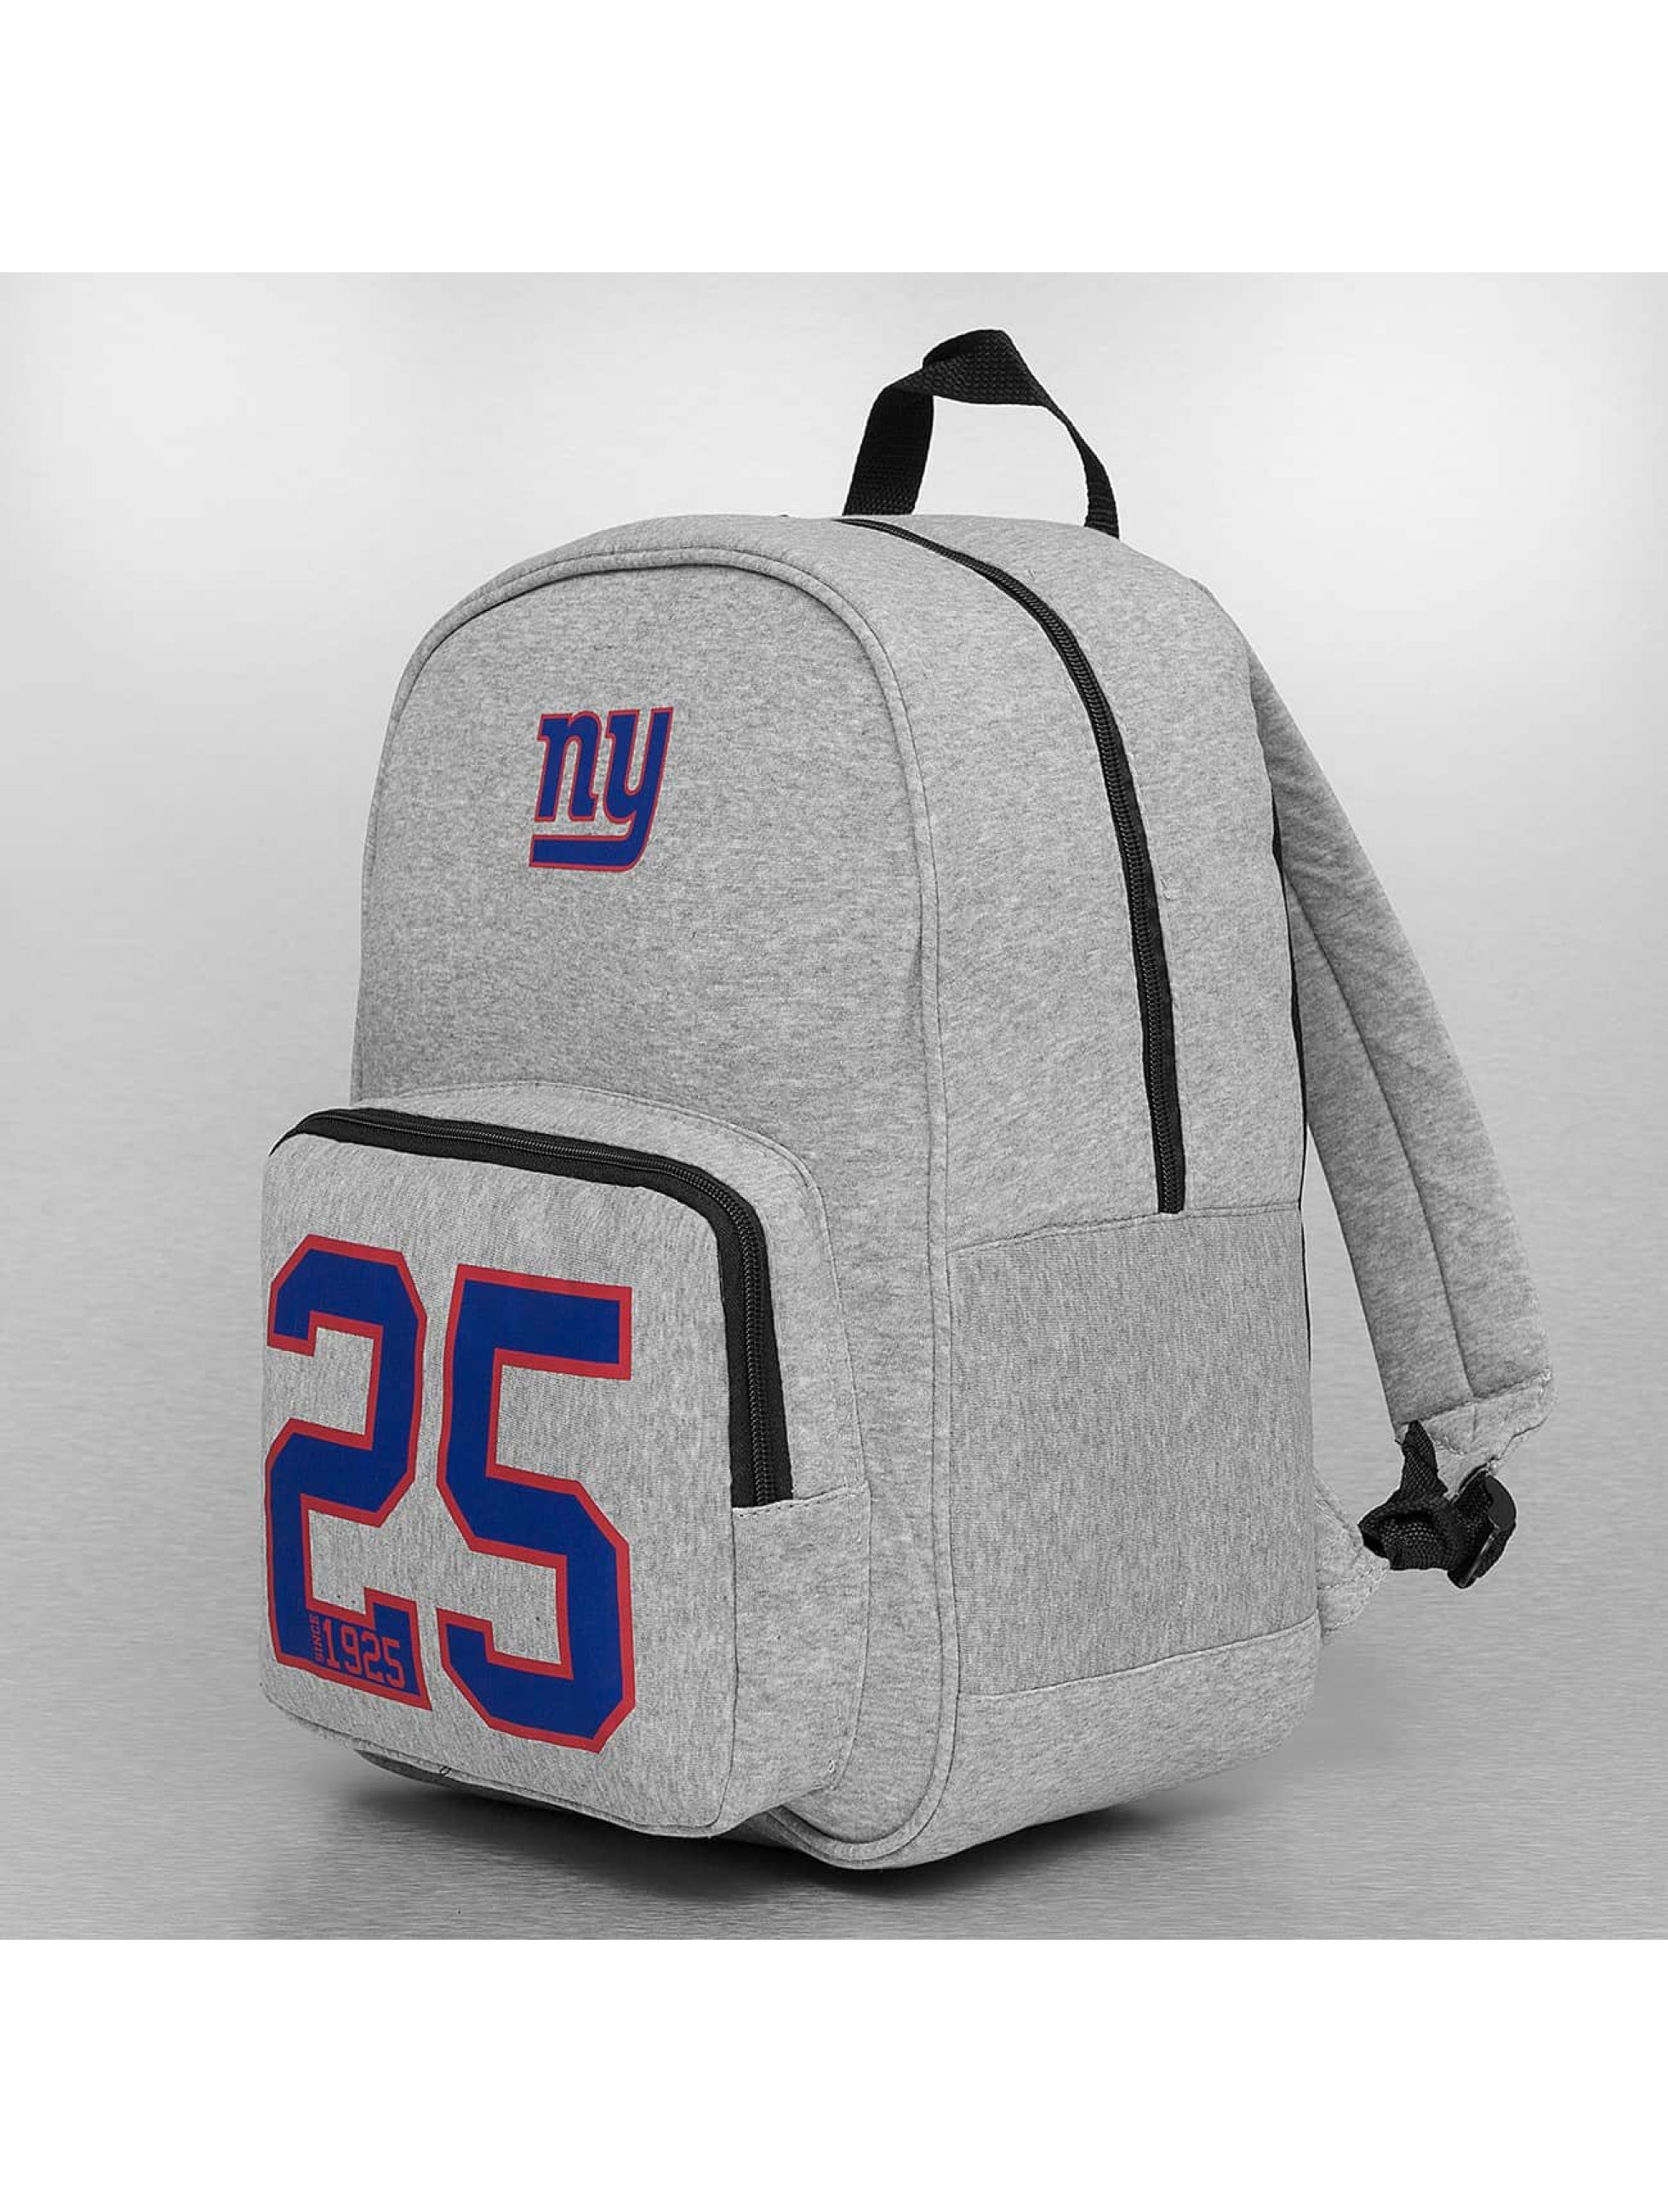 Forever Collectibles Batohy NFL Established NY Ginats šedá